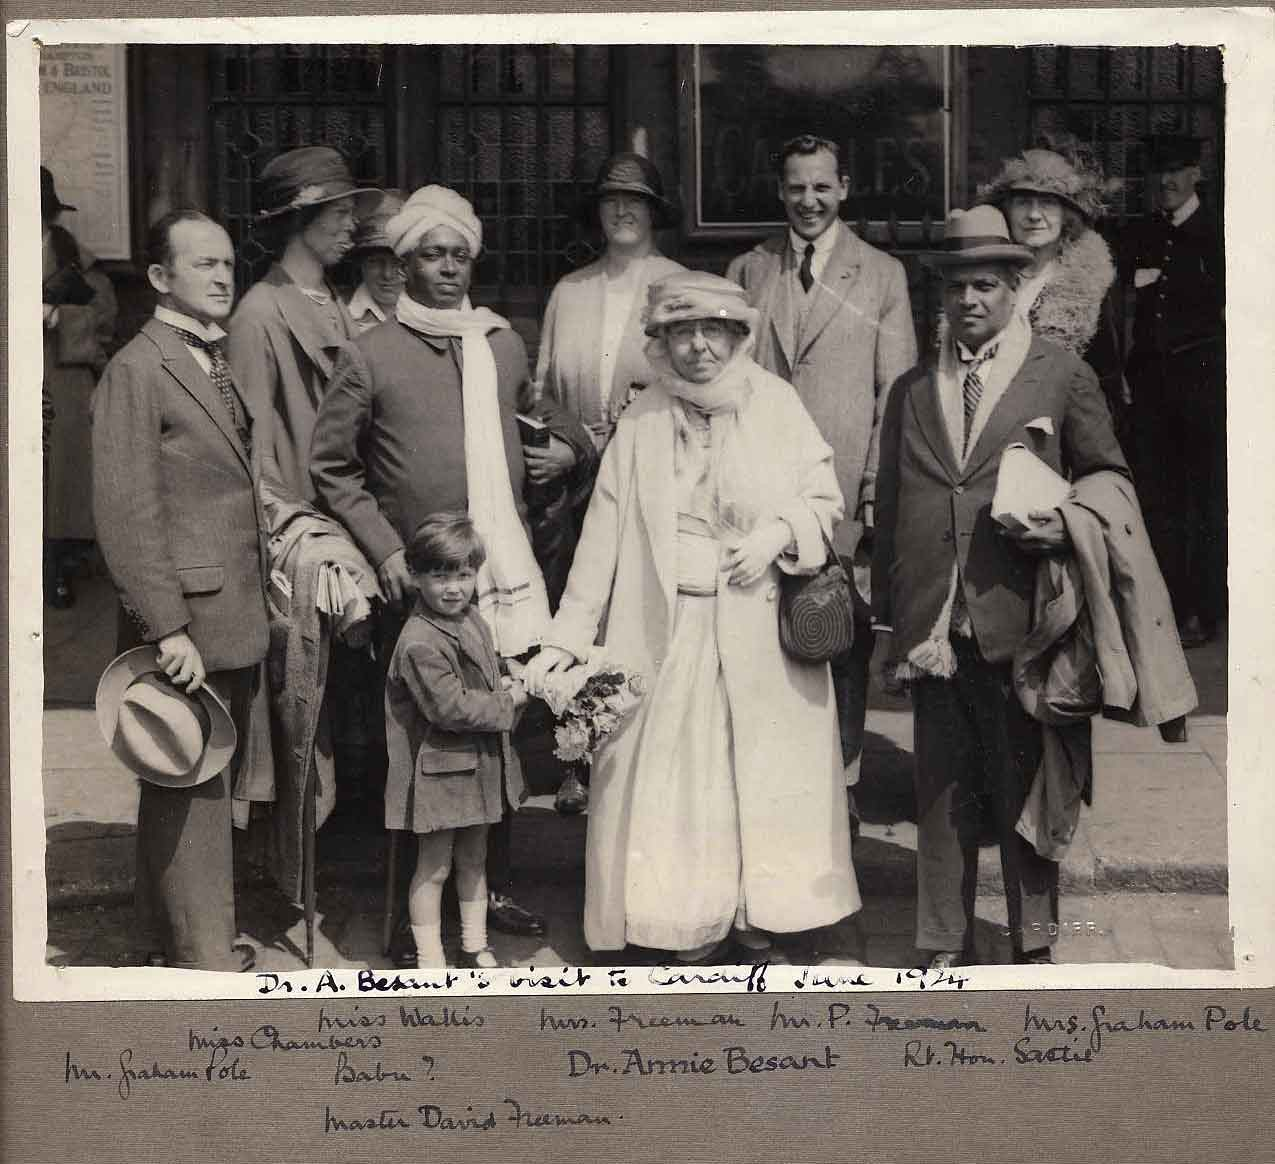 Theosophy Cardiff, Wales, UK:- History of Theosophy in Wales. Annie Besant  Visits Cardiff 1924